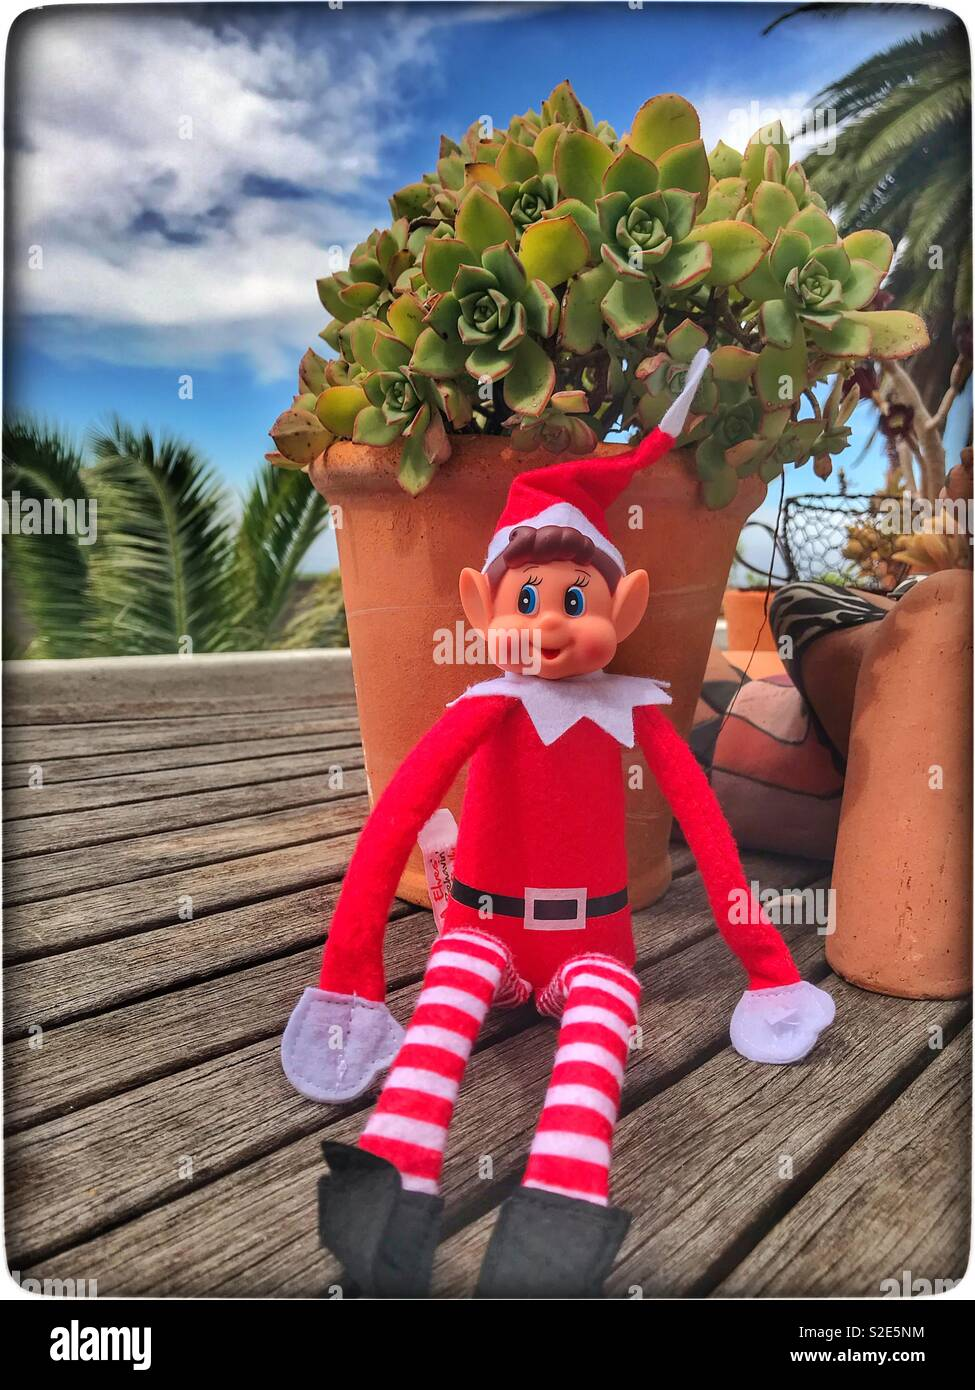 Naughty elf sitting on a table. Stock Photo